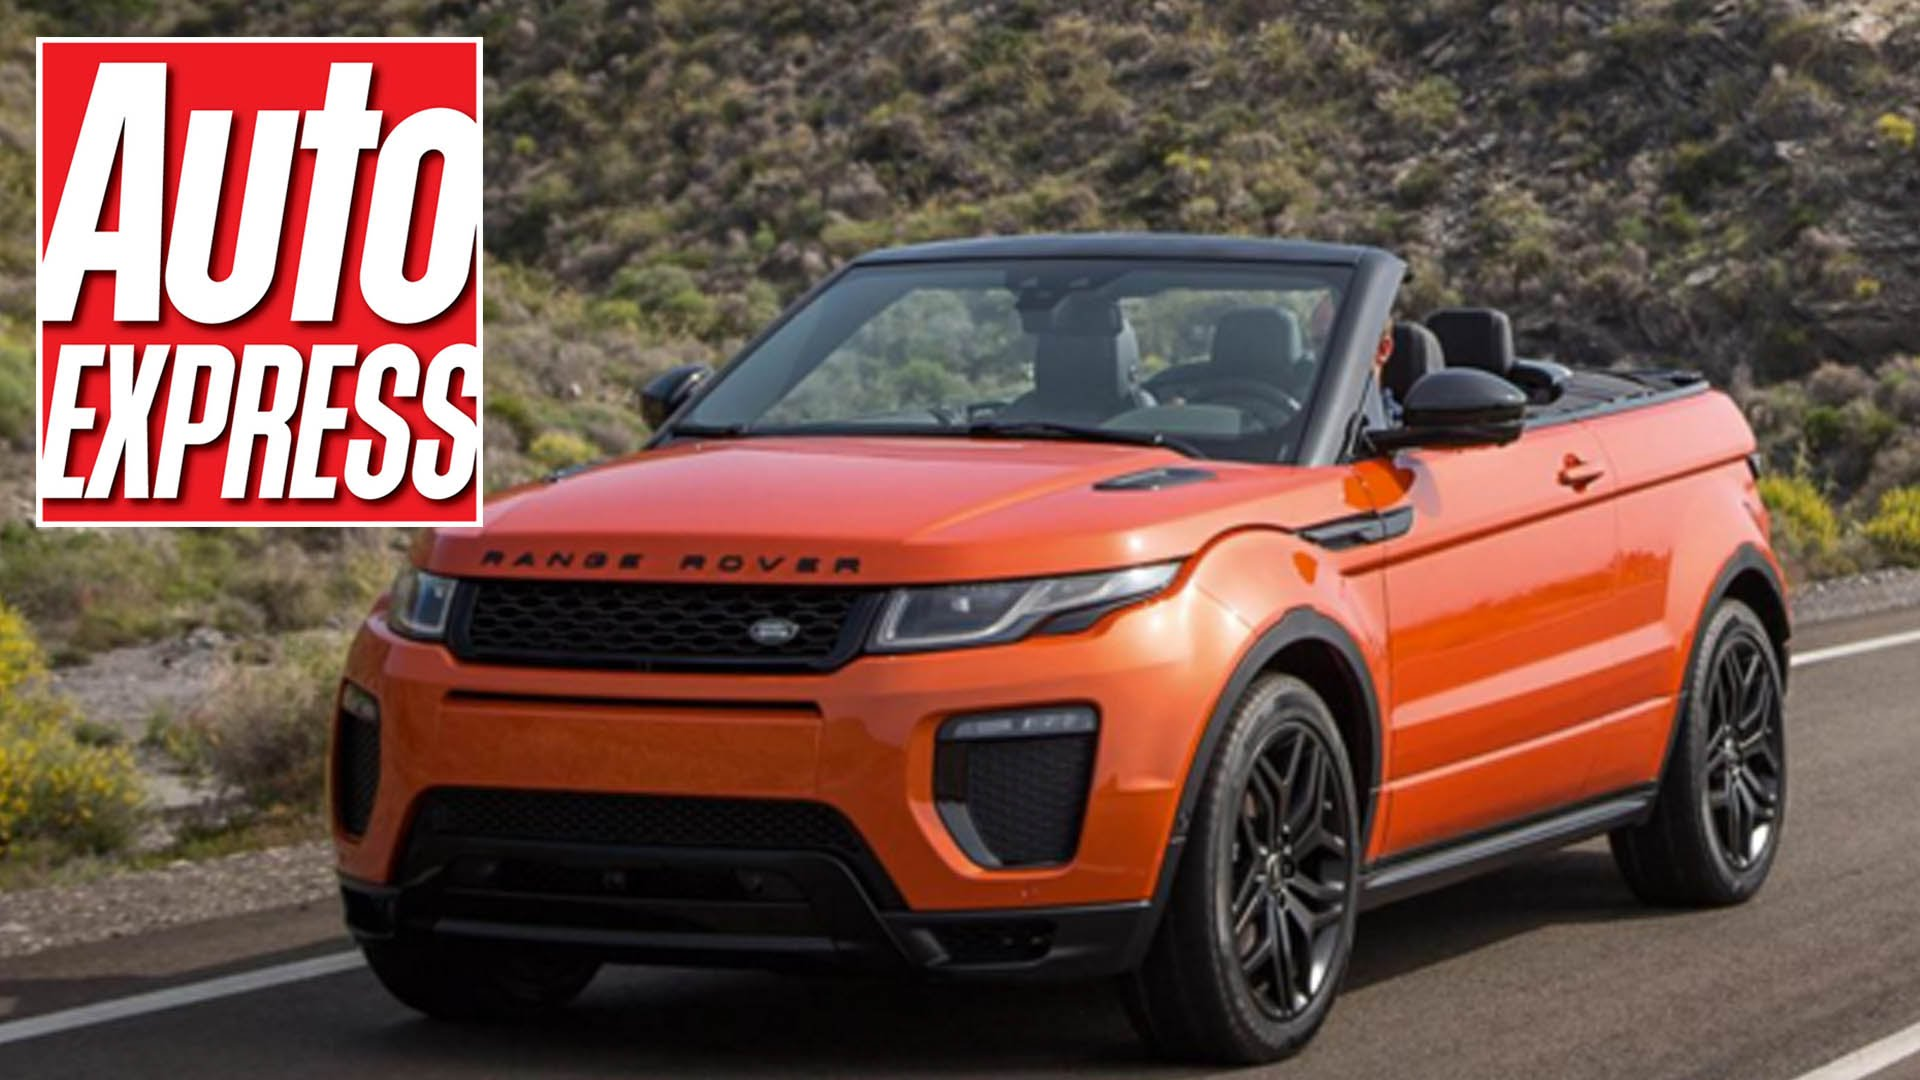 The Brand New Range Rover Evoque Convertible Is Turning Heads And Wowing Everyone